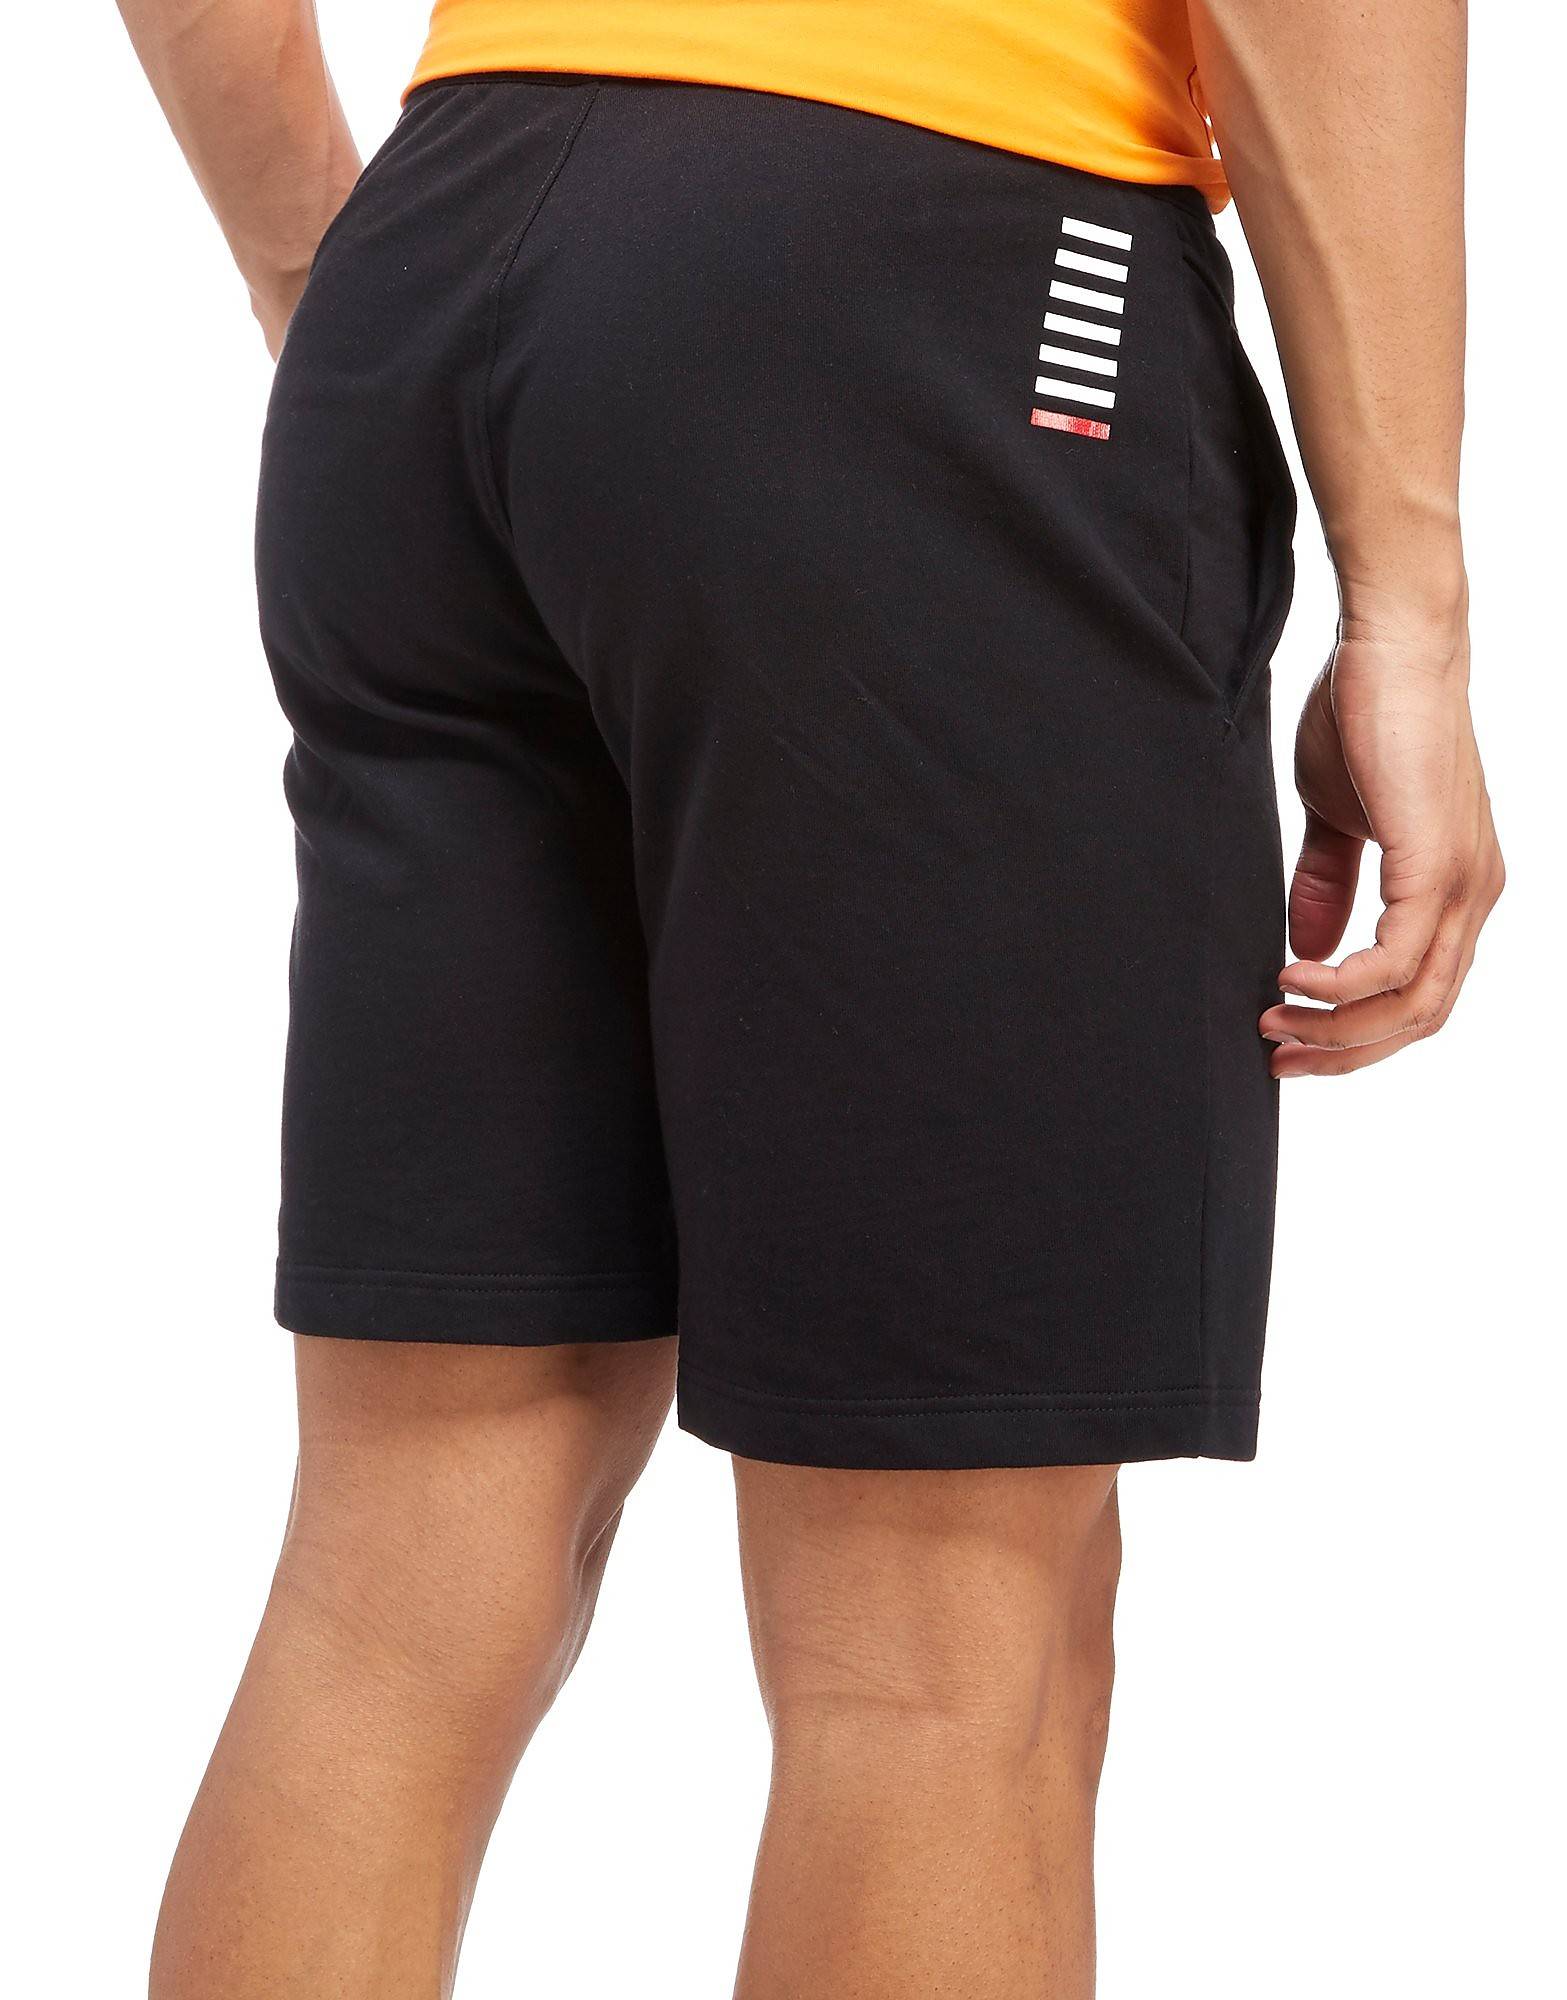 Emporio Armani EA7 Short Core FT Homme